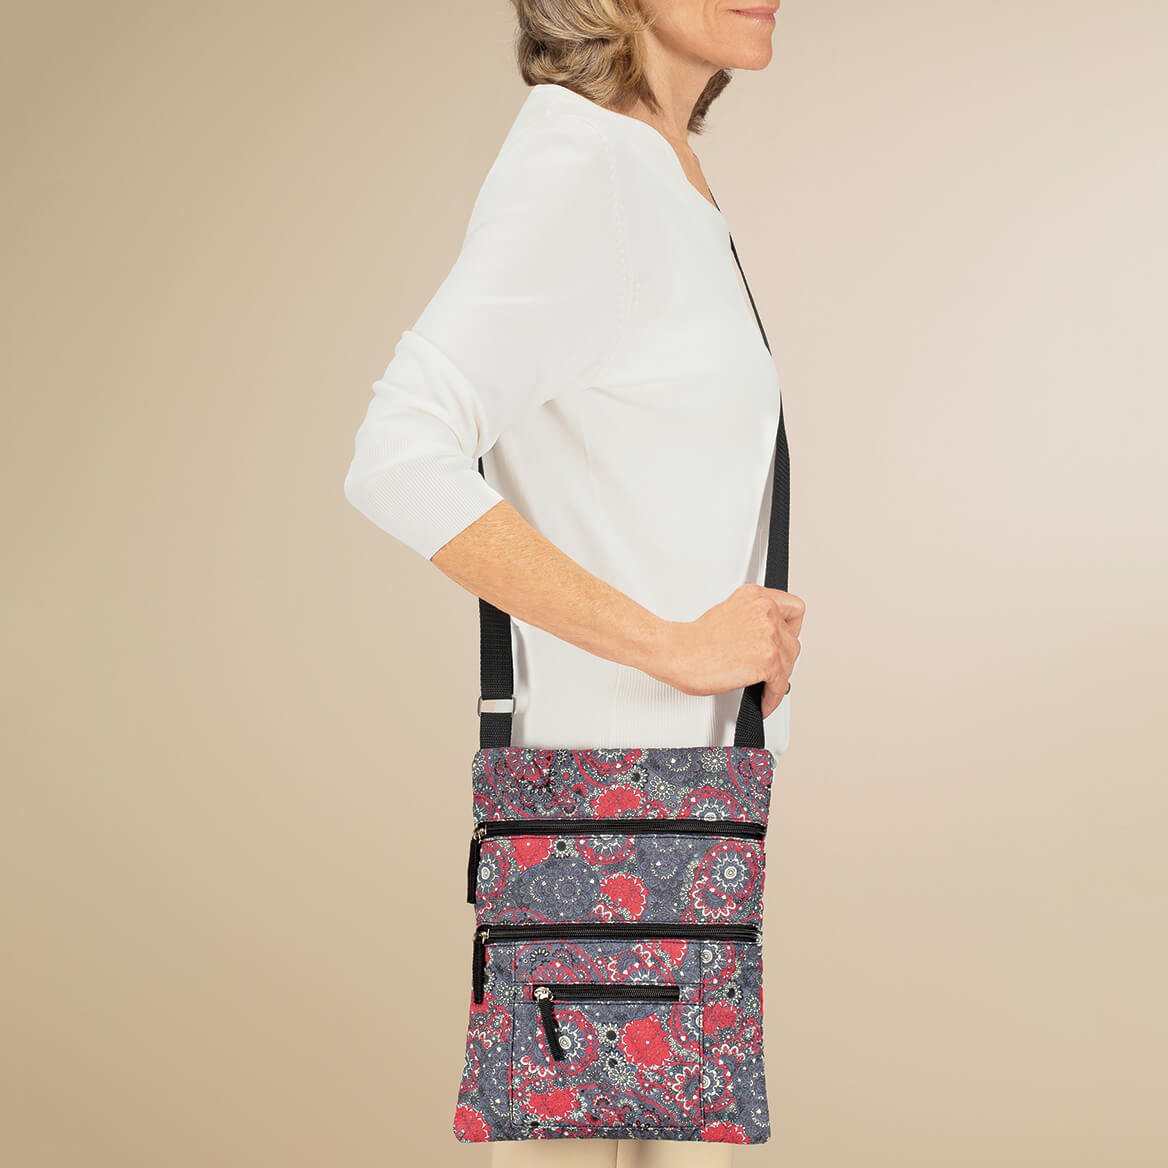 Quilted Crossbody Bag with Umbrella-362607